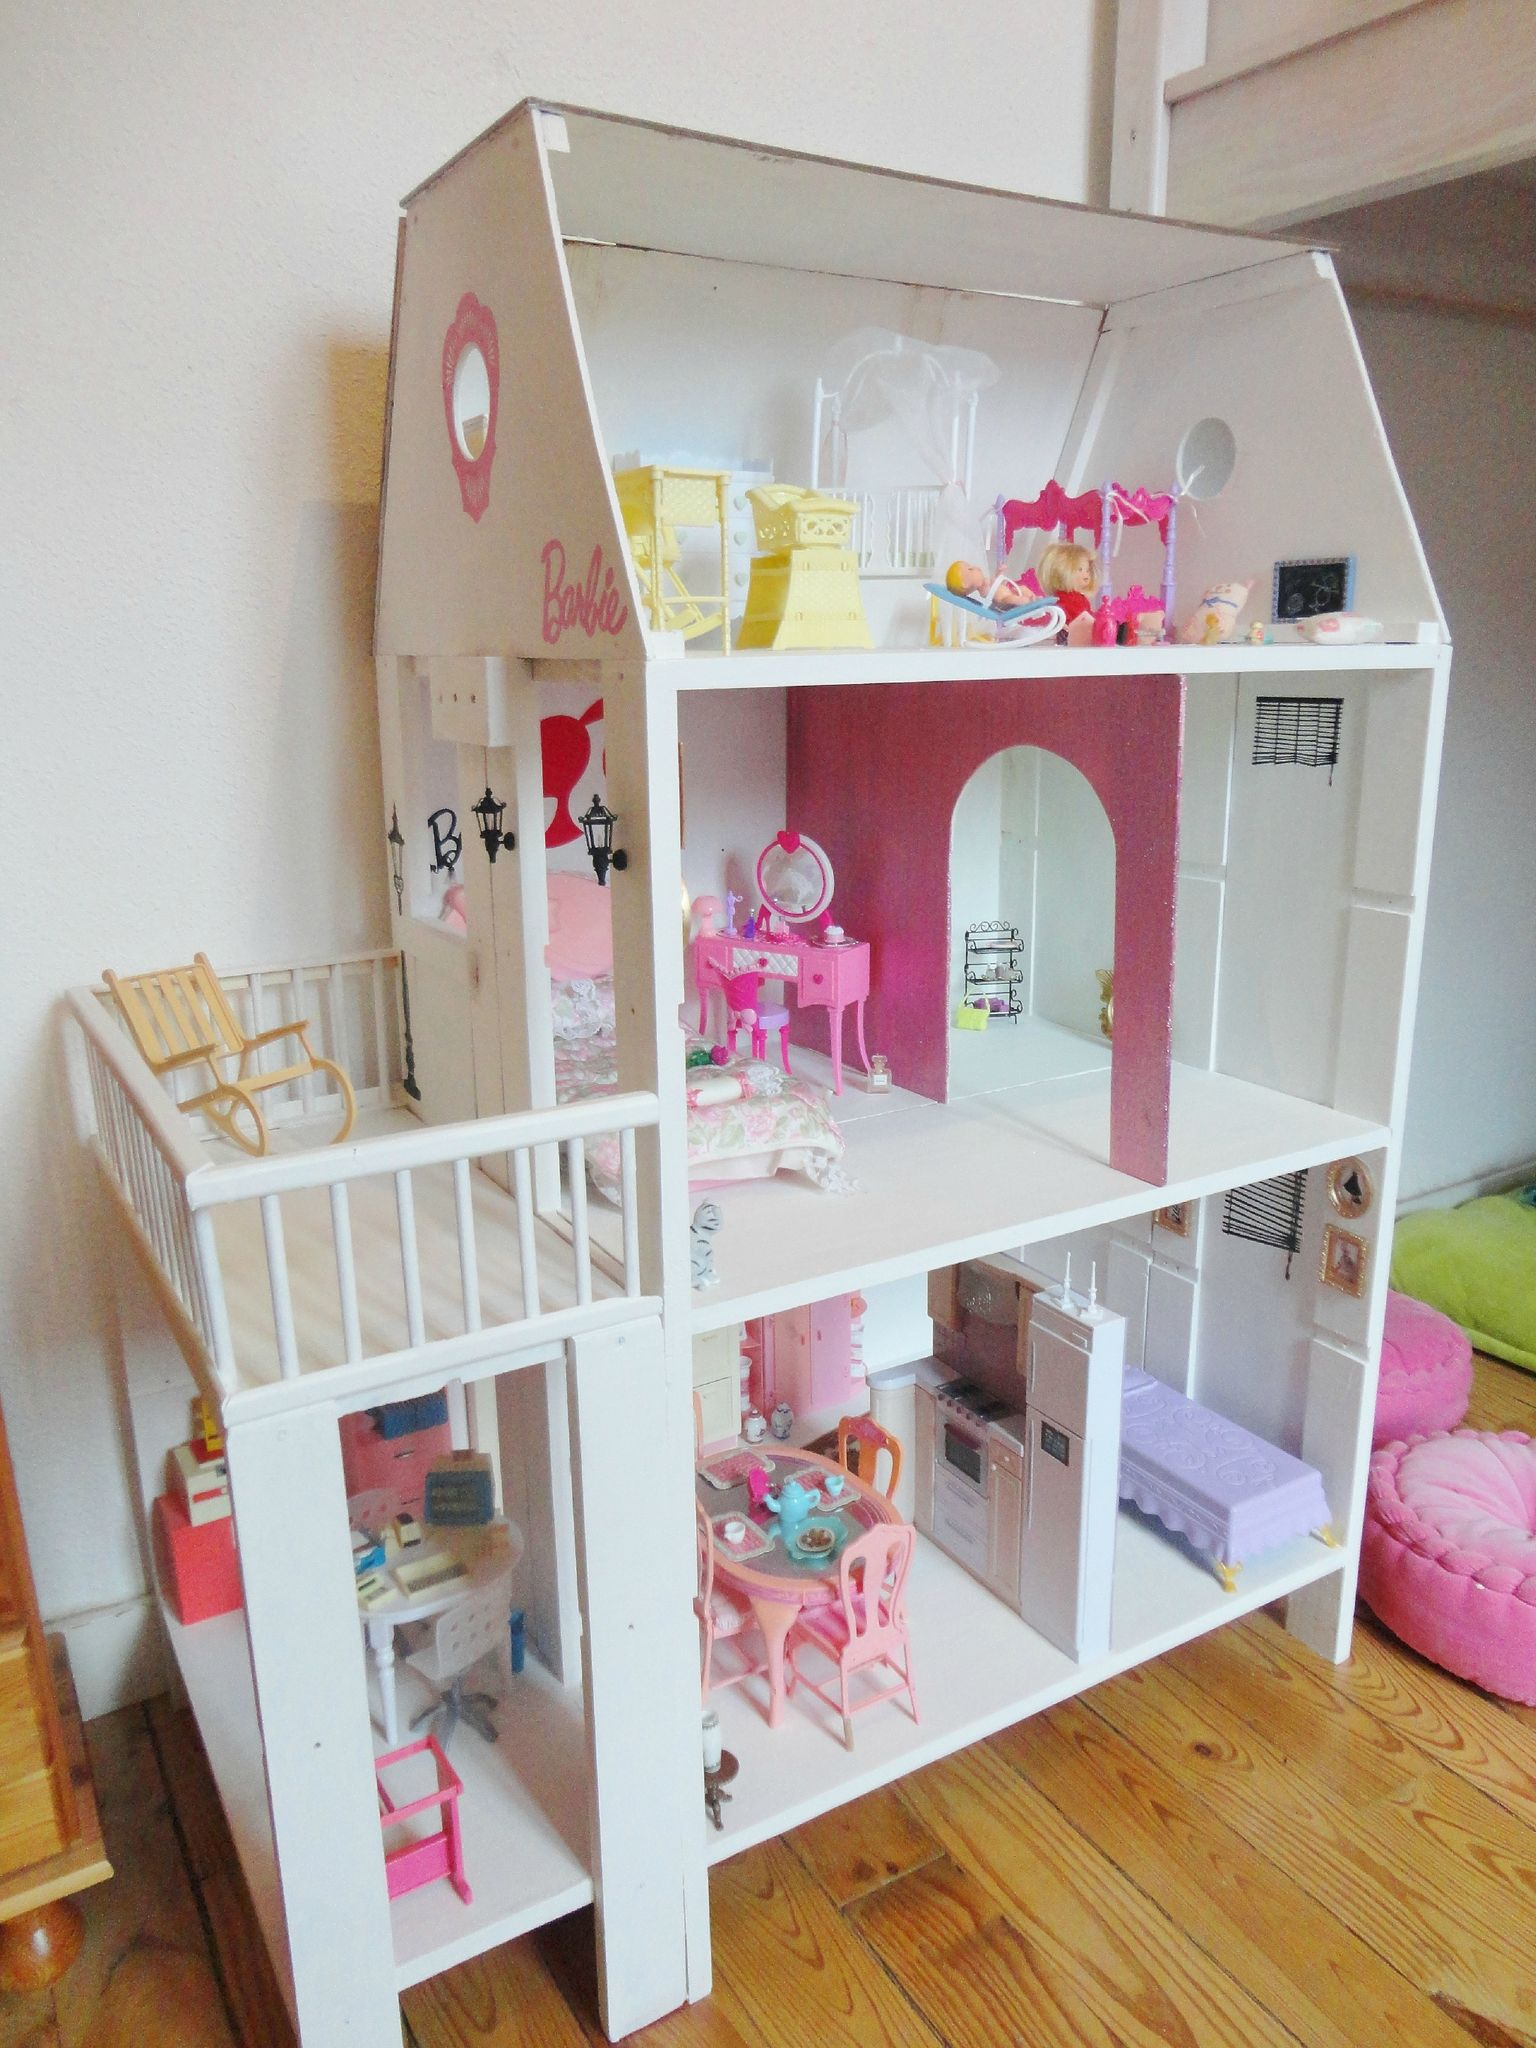 Maison de barbie sc cr ations - Image de barbie ...